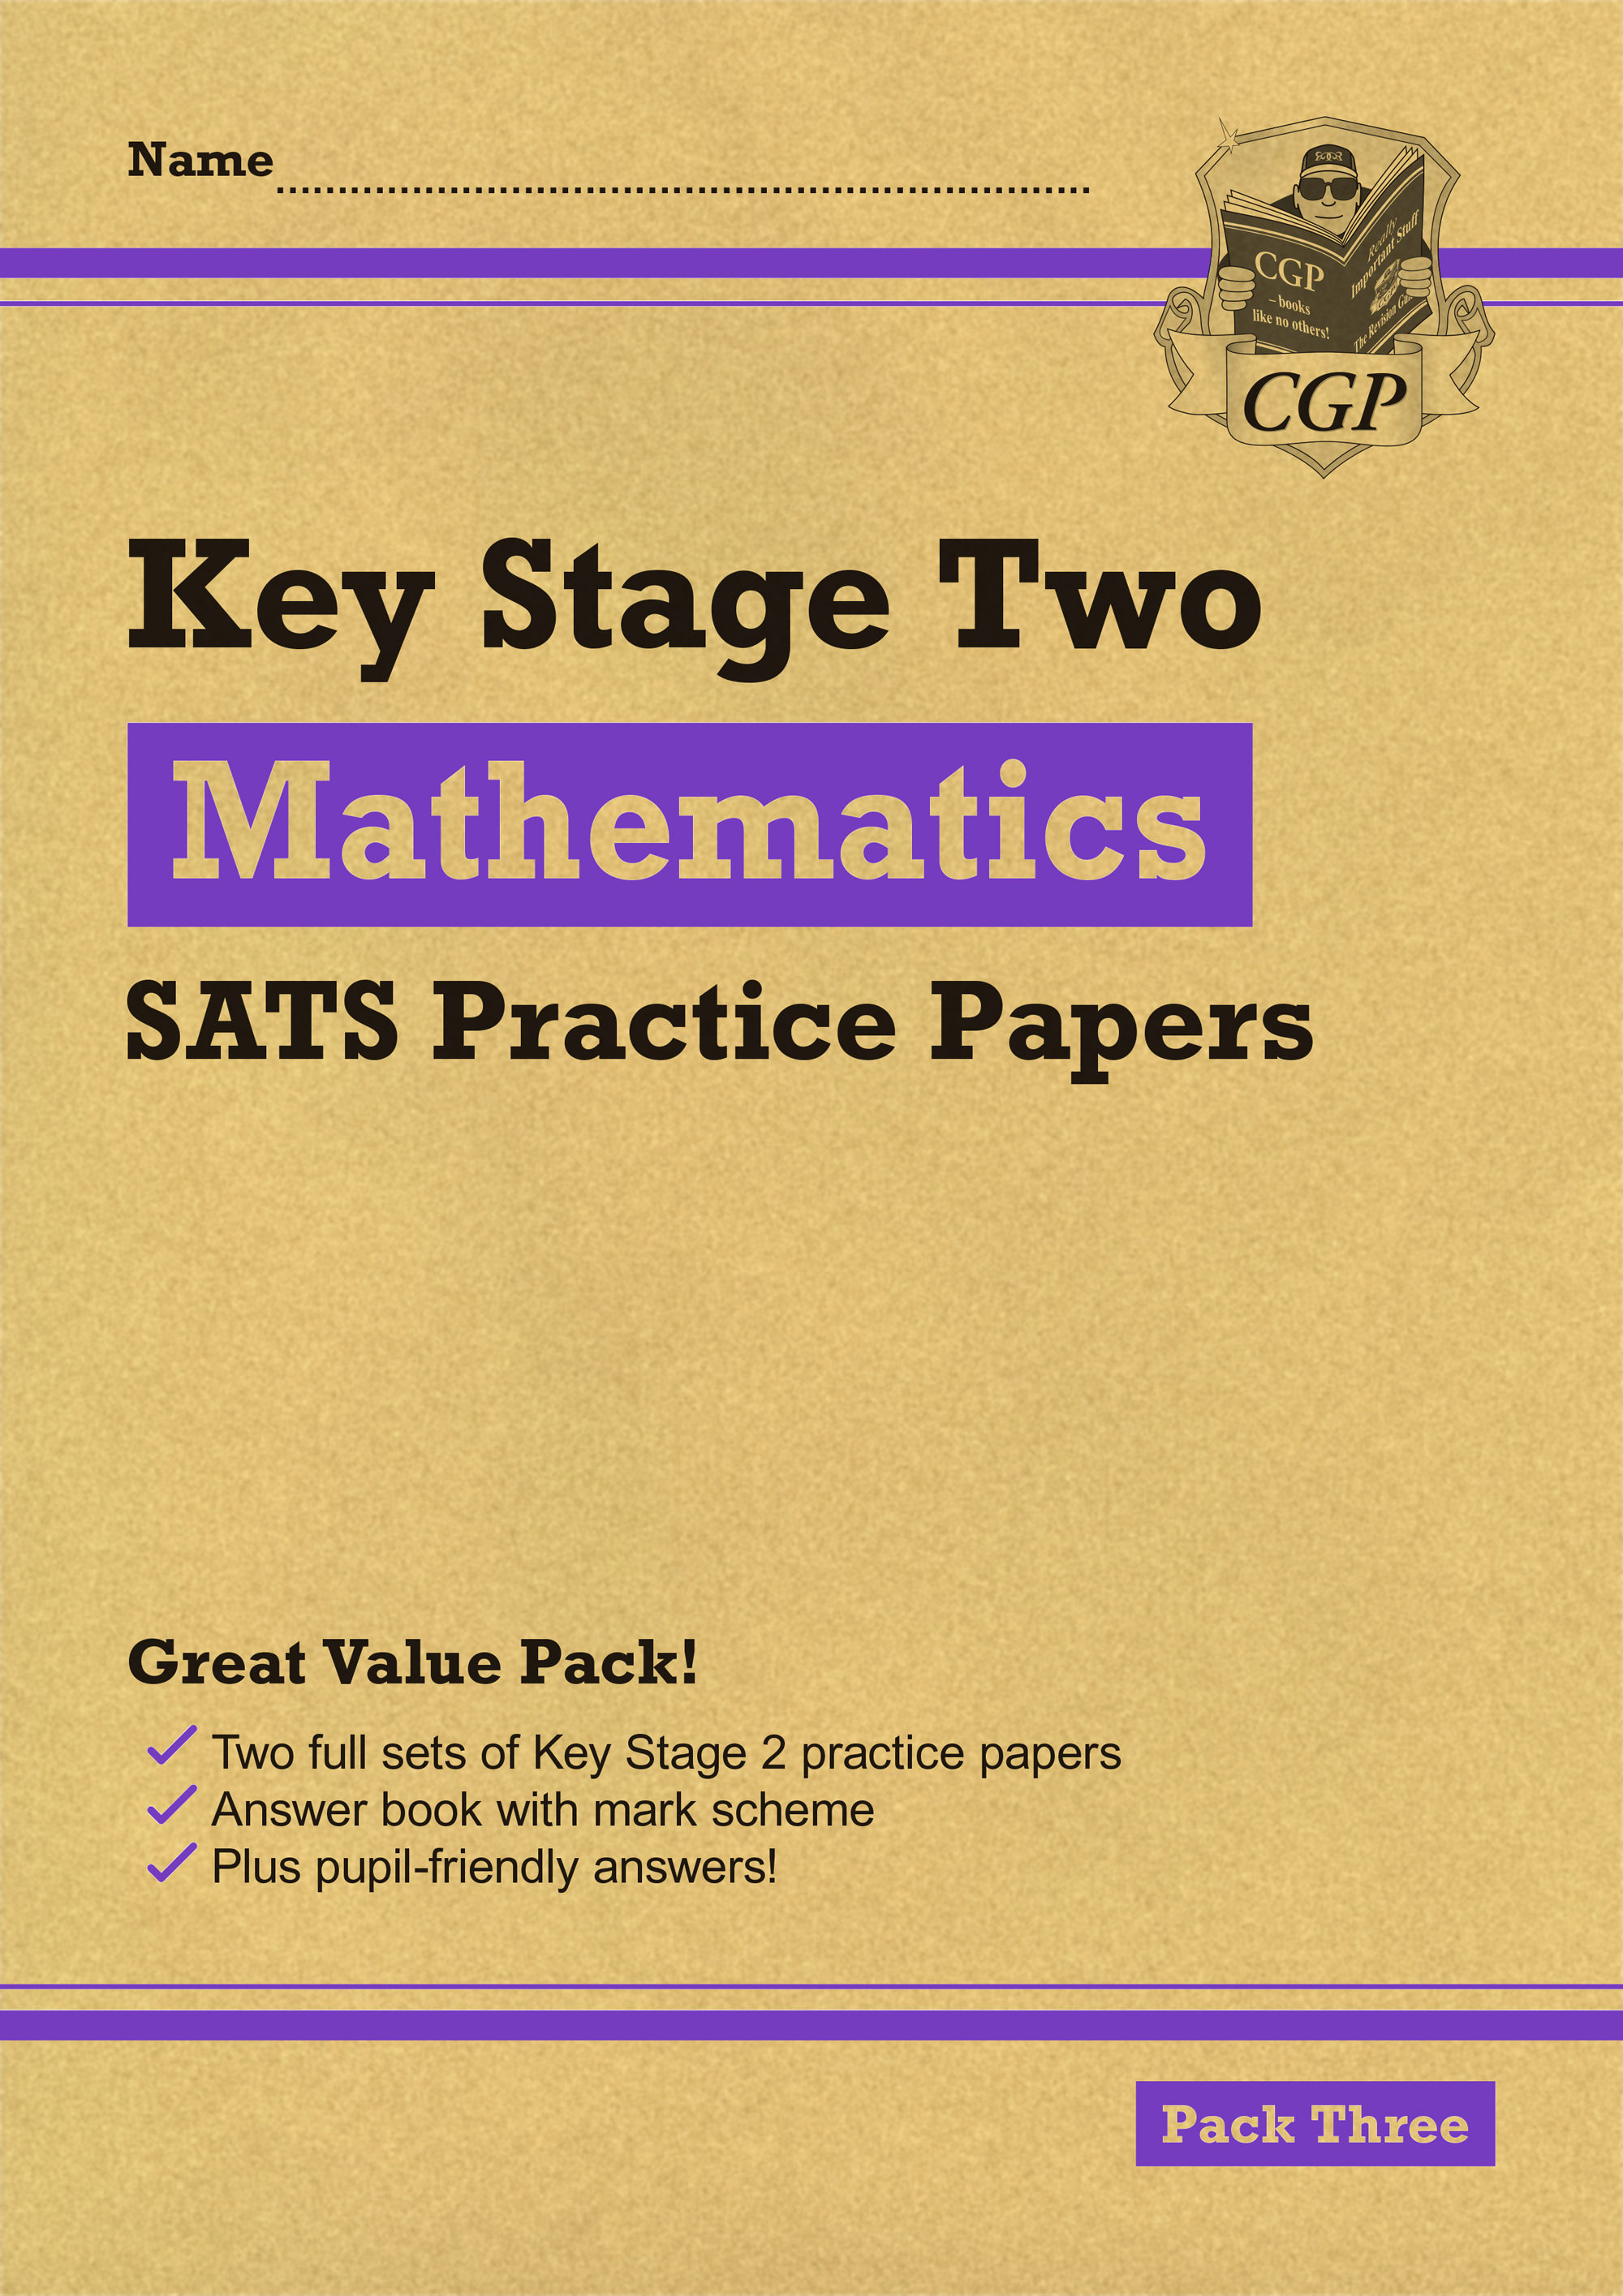 MHPP27 - New KS2 Maths SATS Practice Papers: Pack 3 (for the 2020 tests)